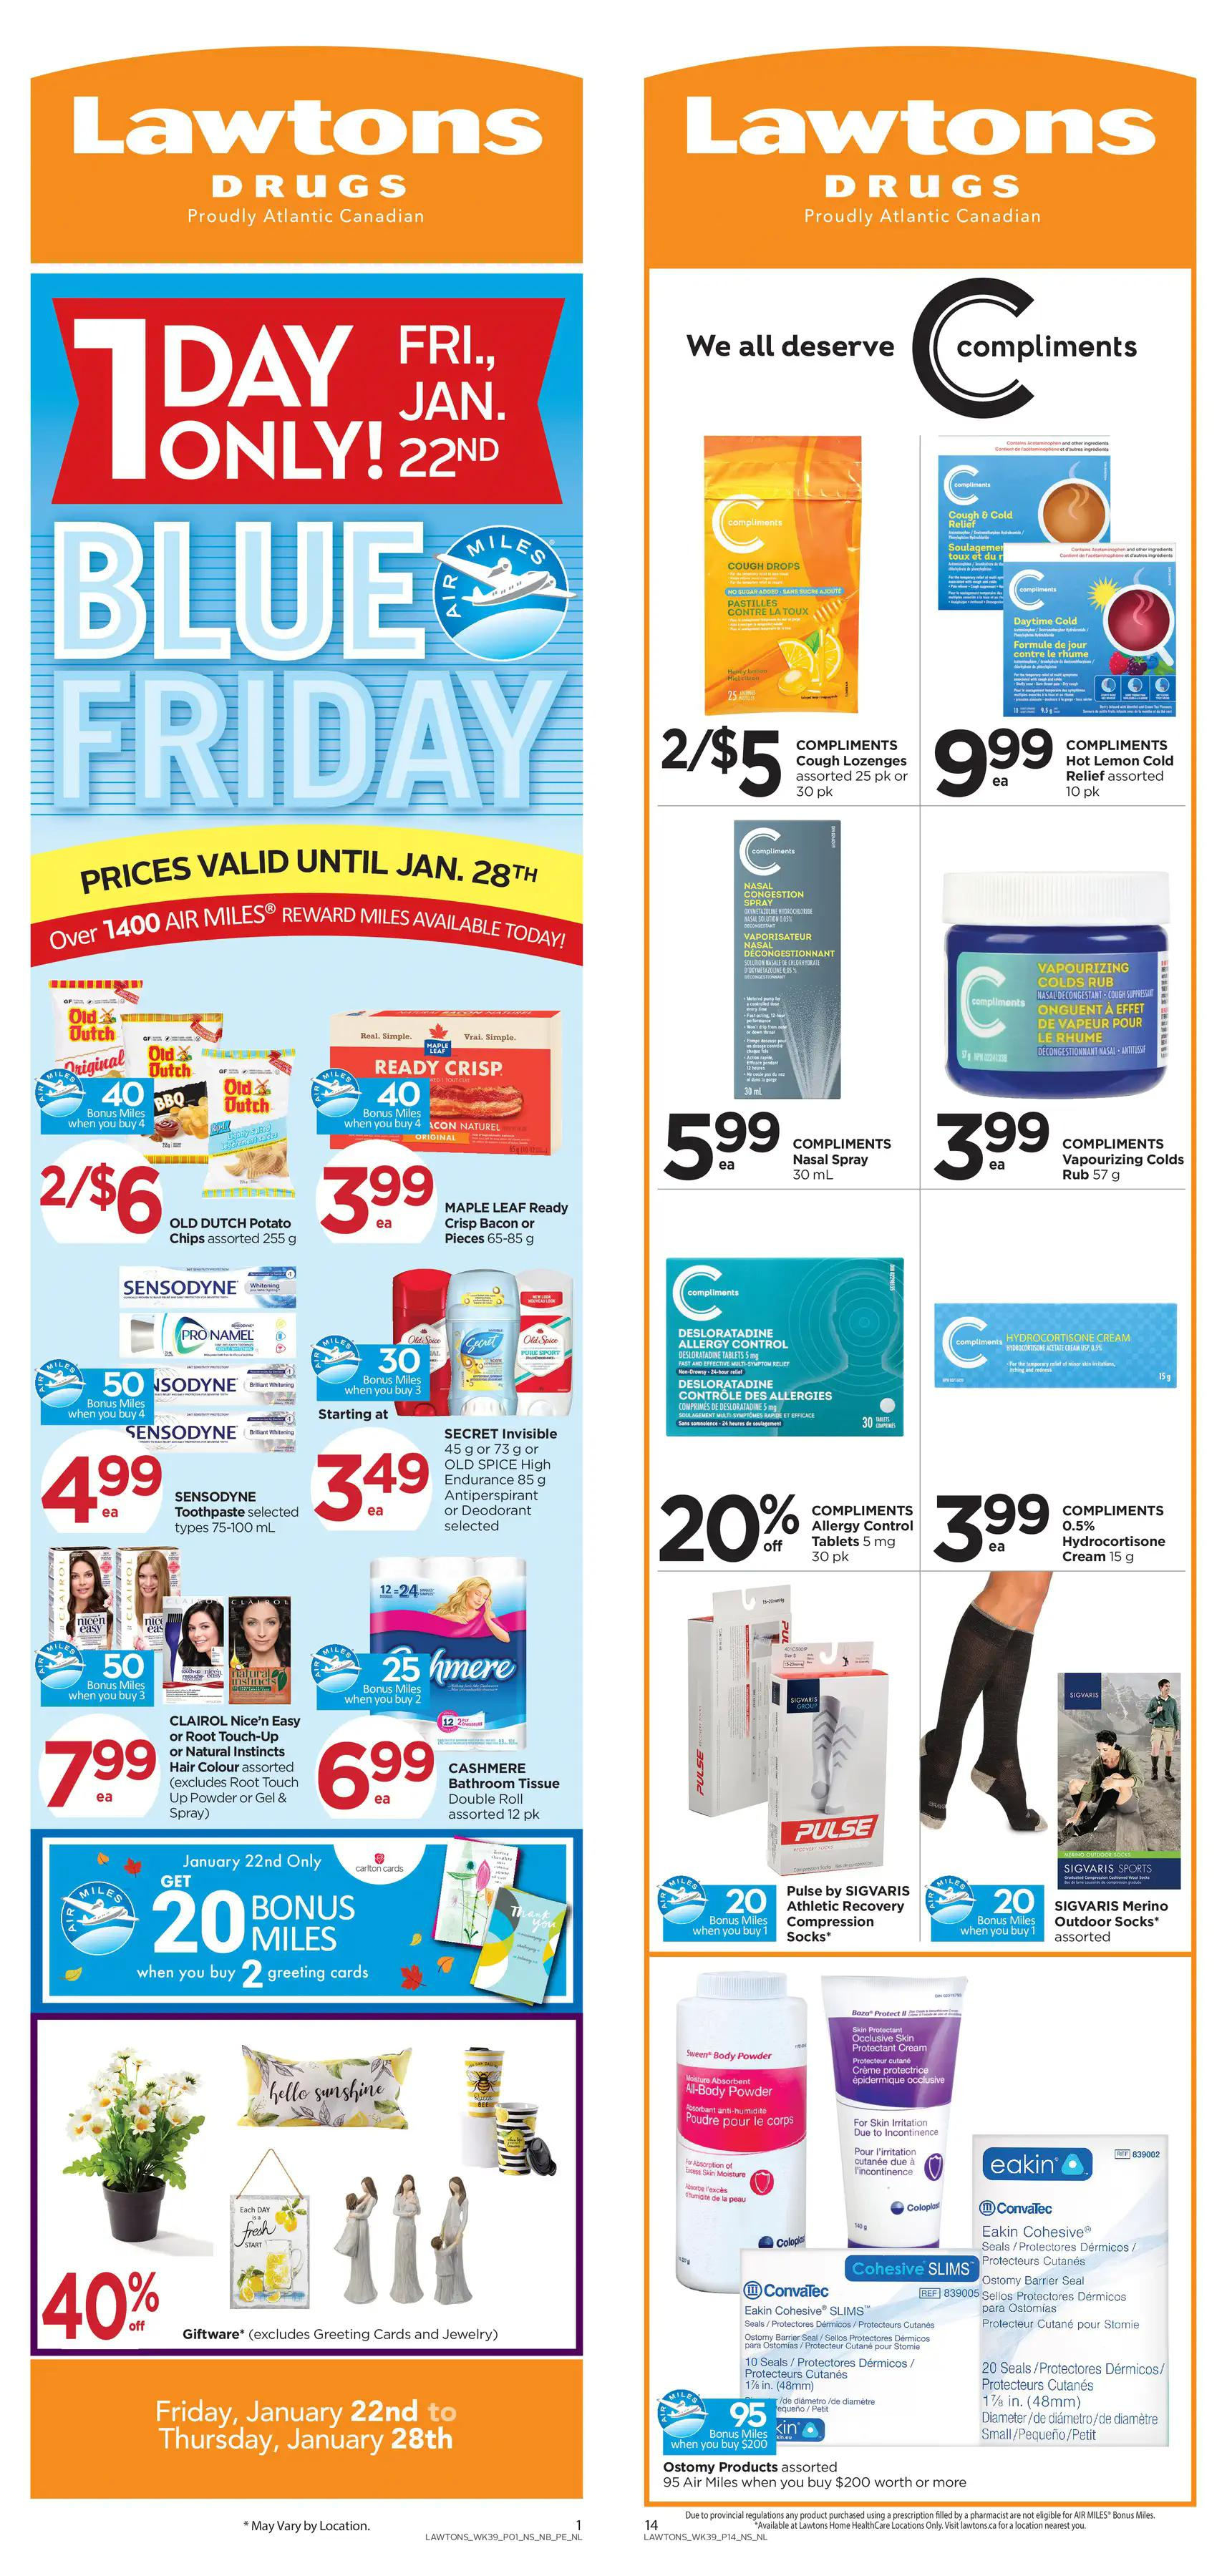 Lawtons Drugs - Weekly Flyer Specials - Page 1